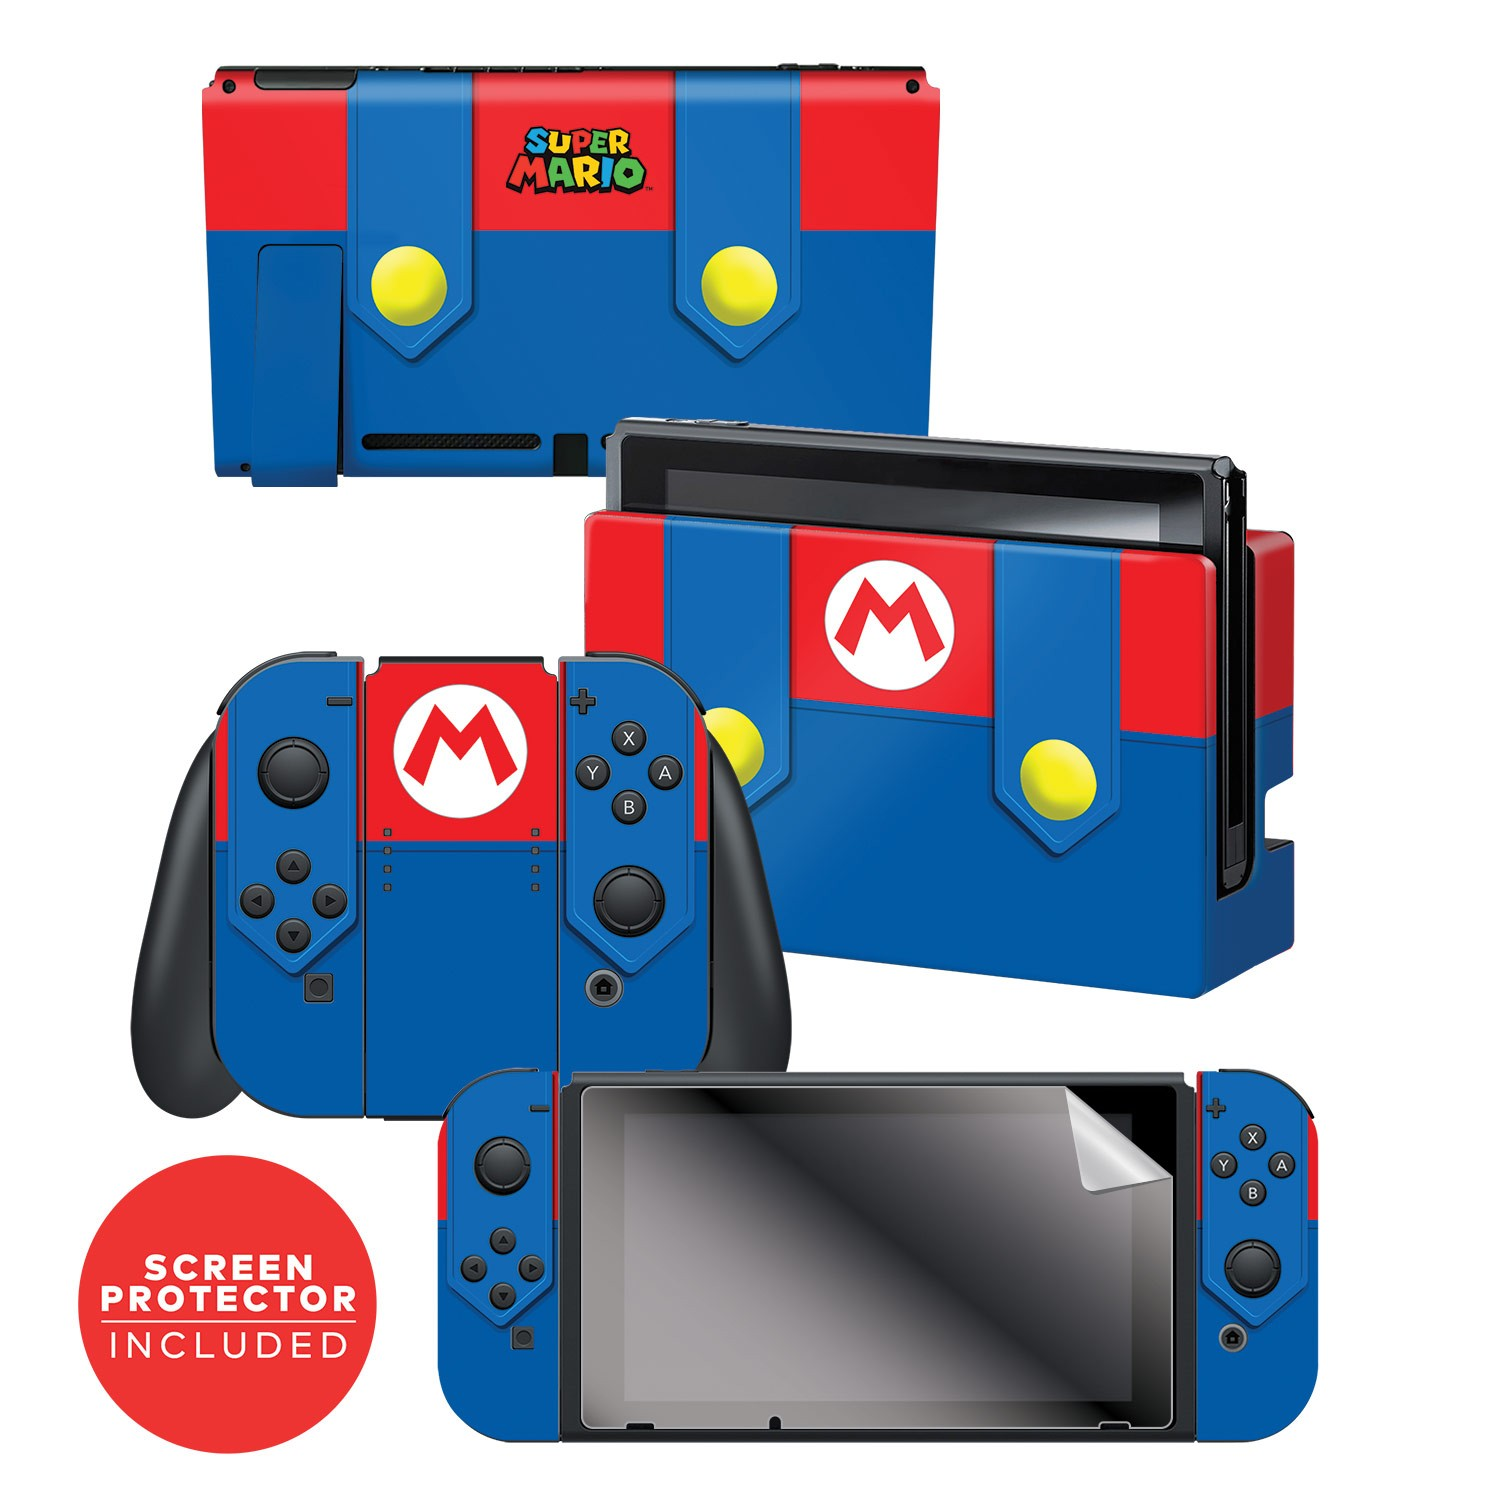 "Super Mario™ ""Mario's Outfit"" Nintendo Switch™ Console skin + Dock Skin + Joy-Con™ skin +  Joy-Con™ Grip Skin + Screen Protector Bundle Assortment, Officially Licensed by Nintendo"